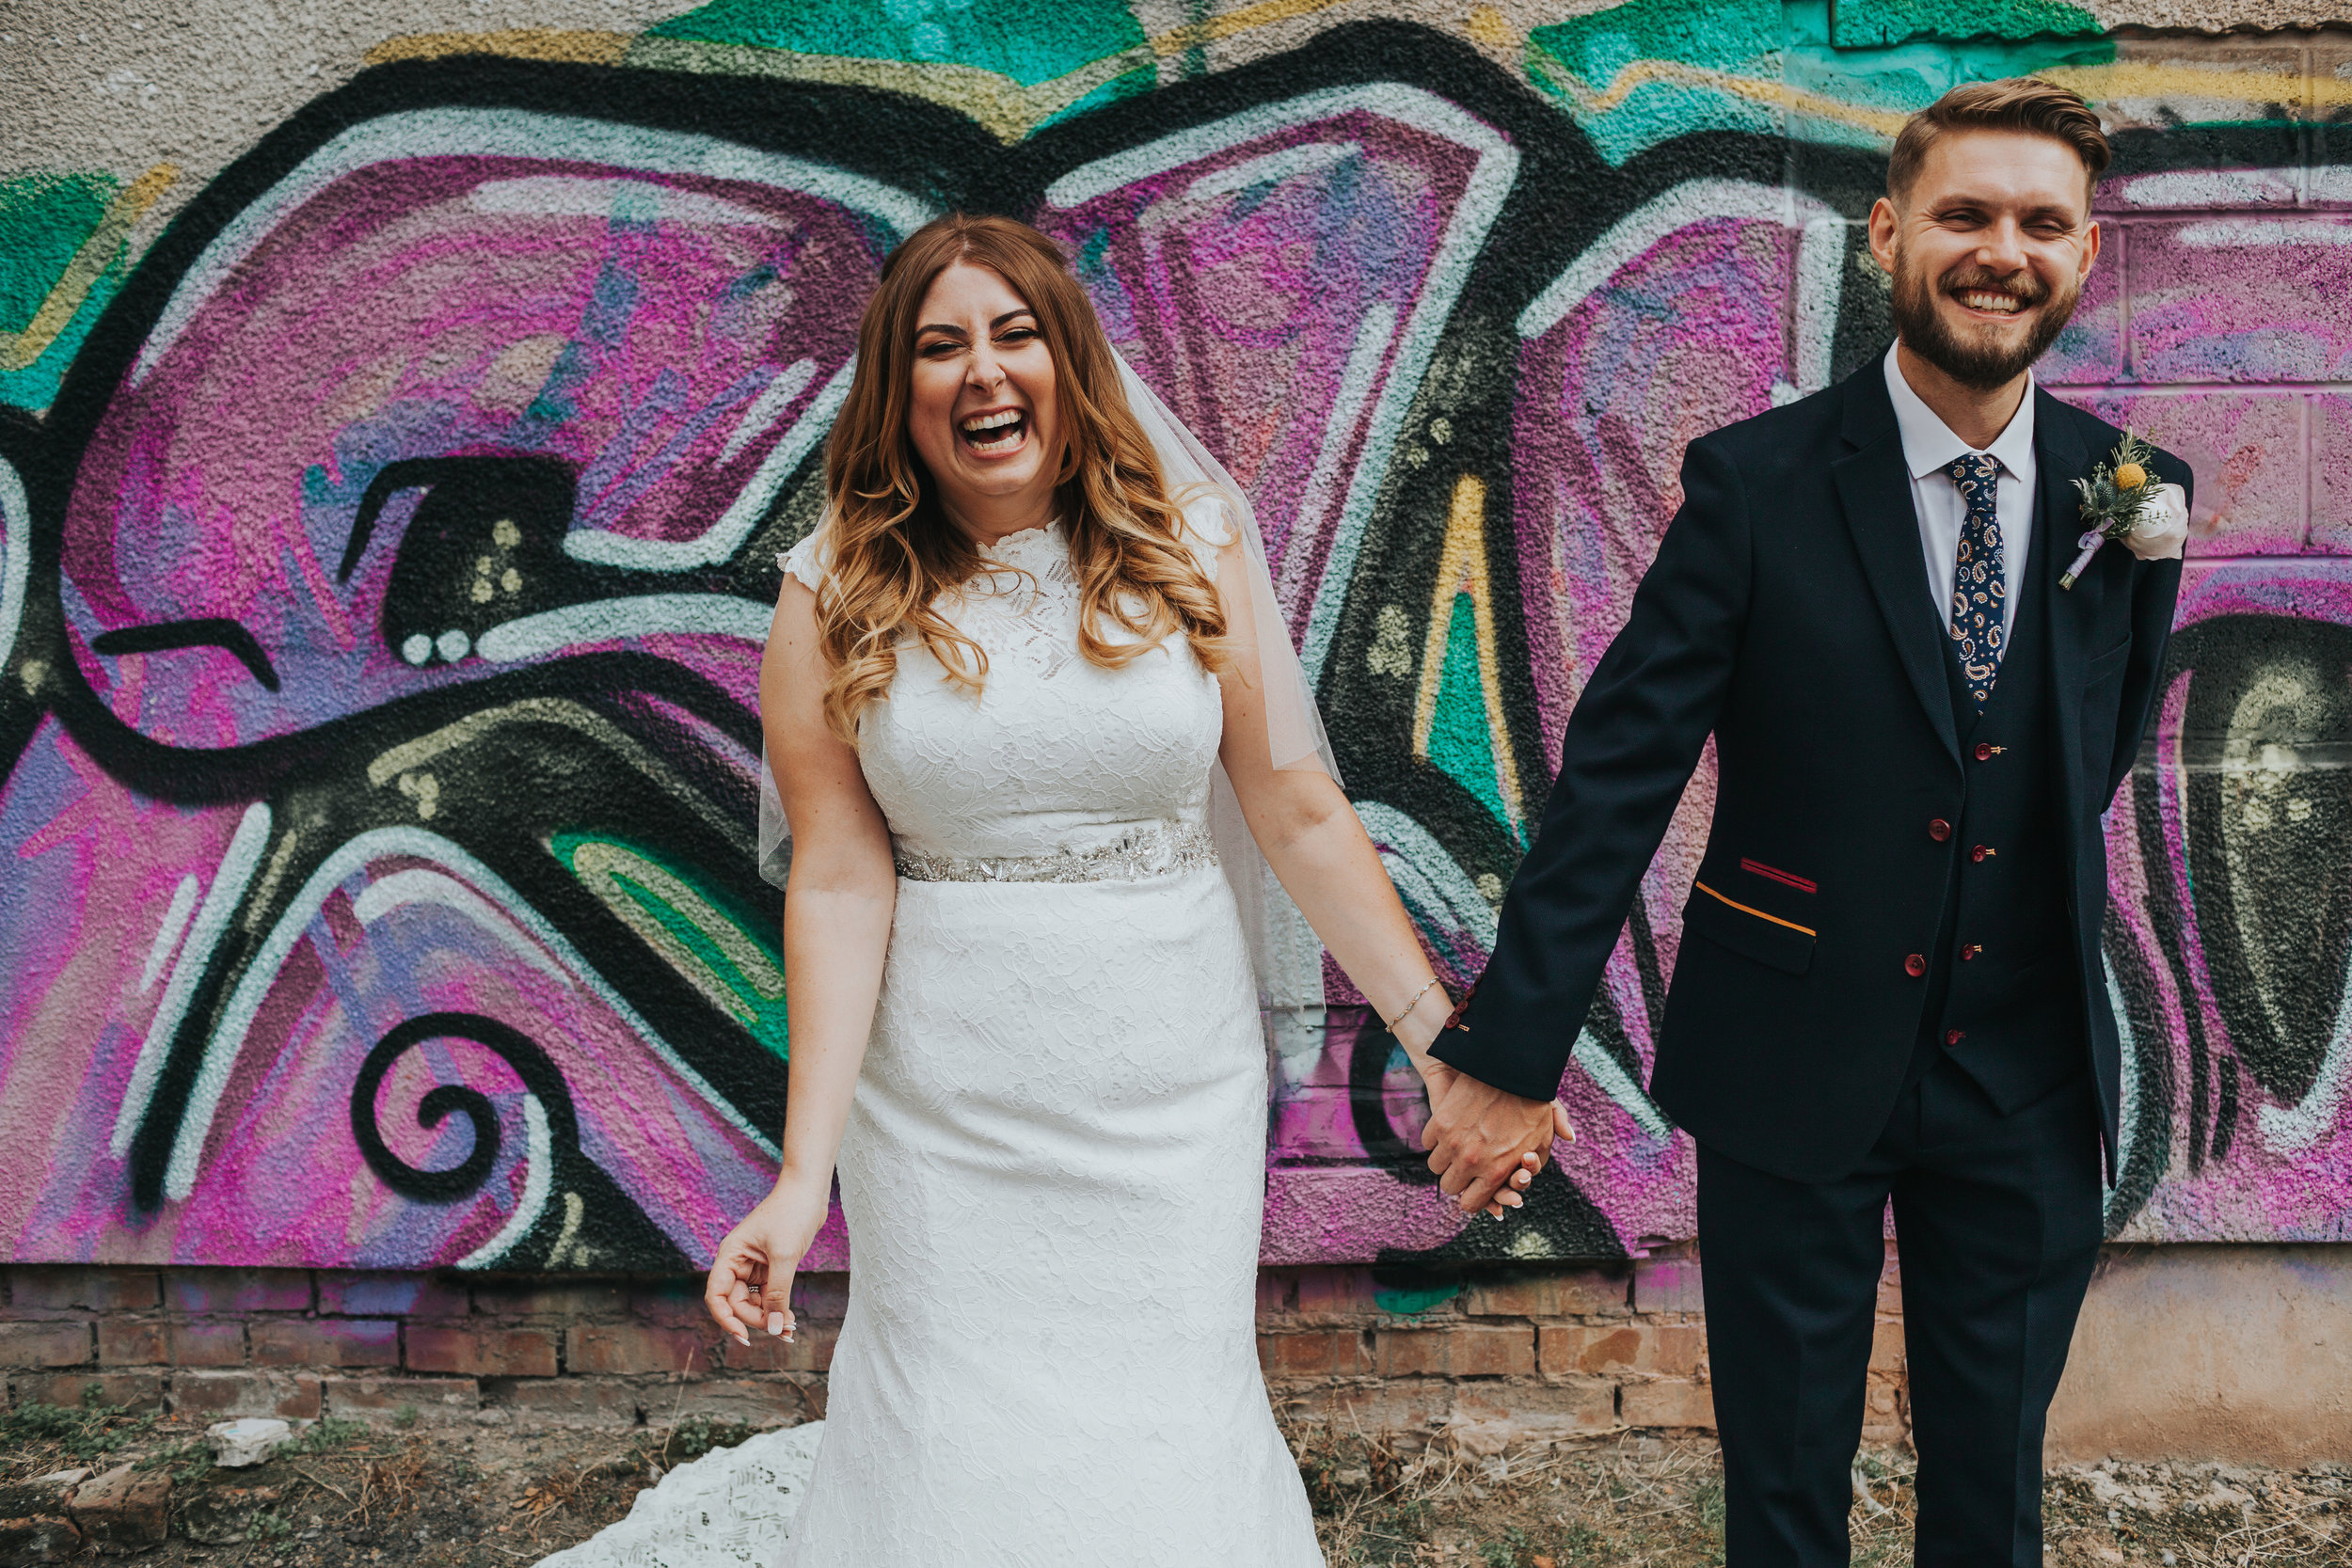 Bride and Groom in front of purple graffiti.